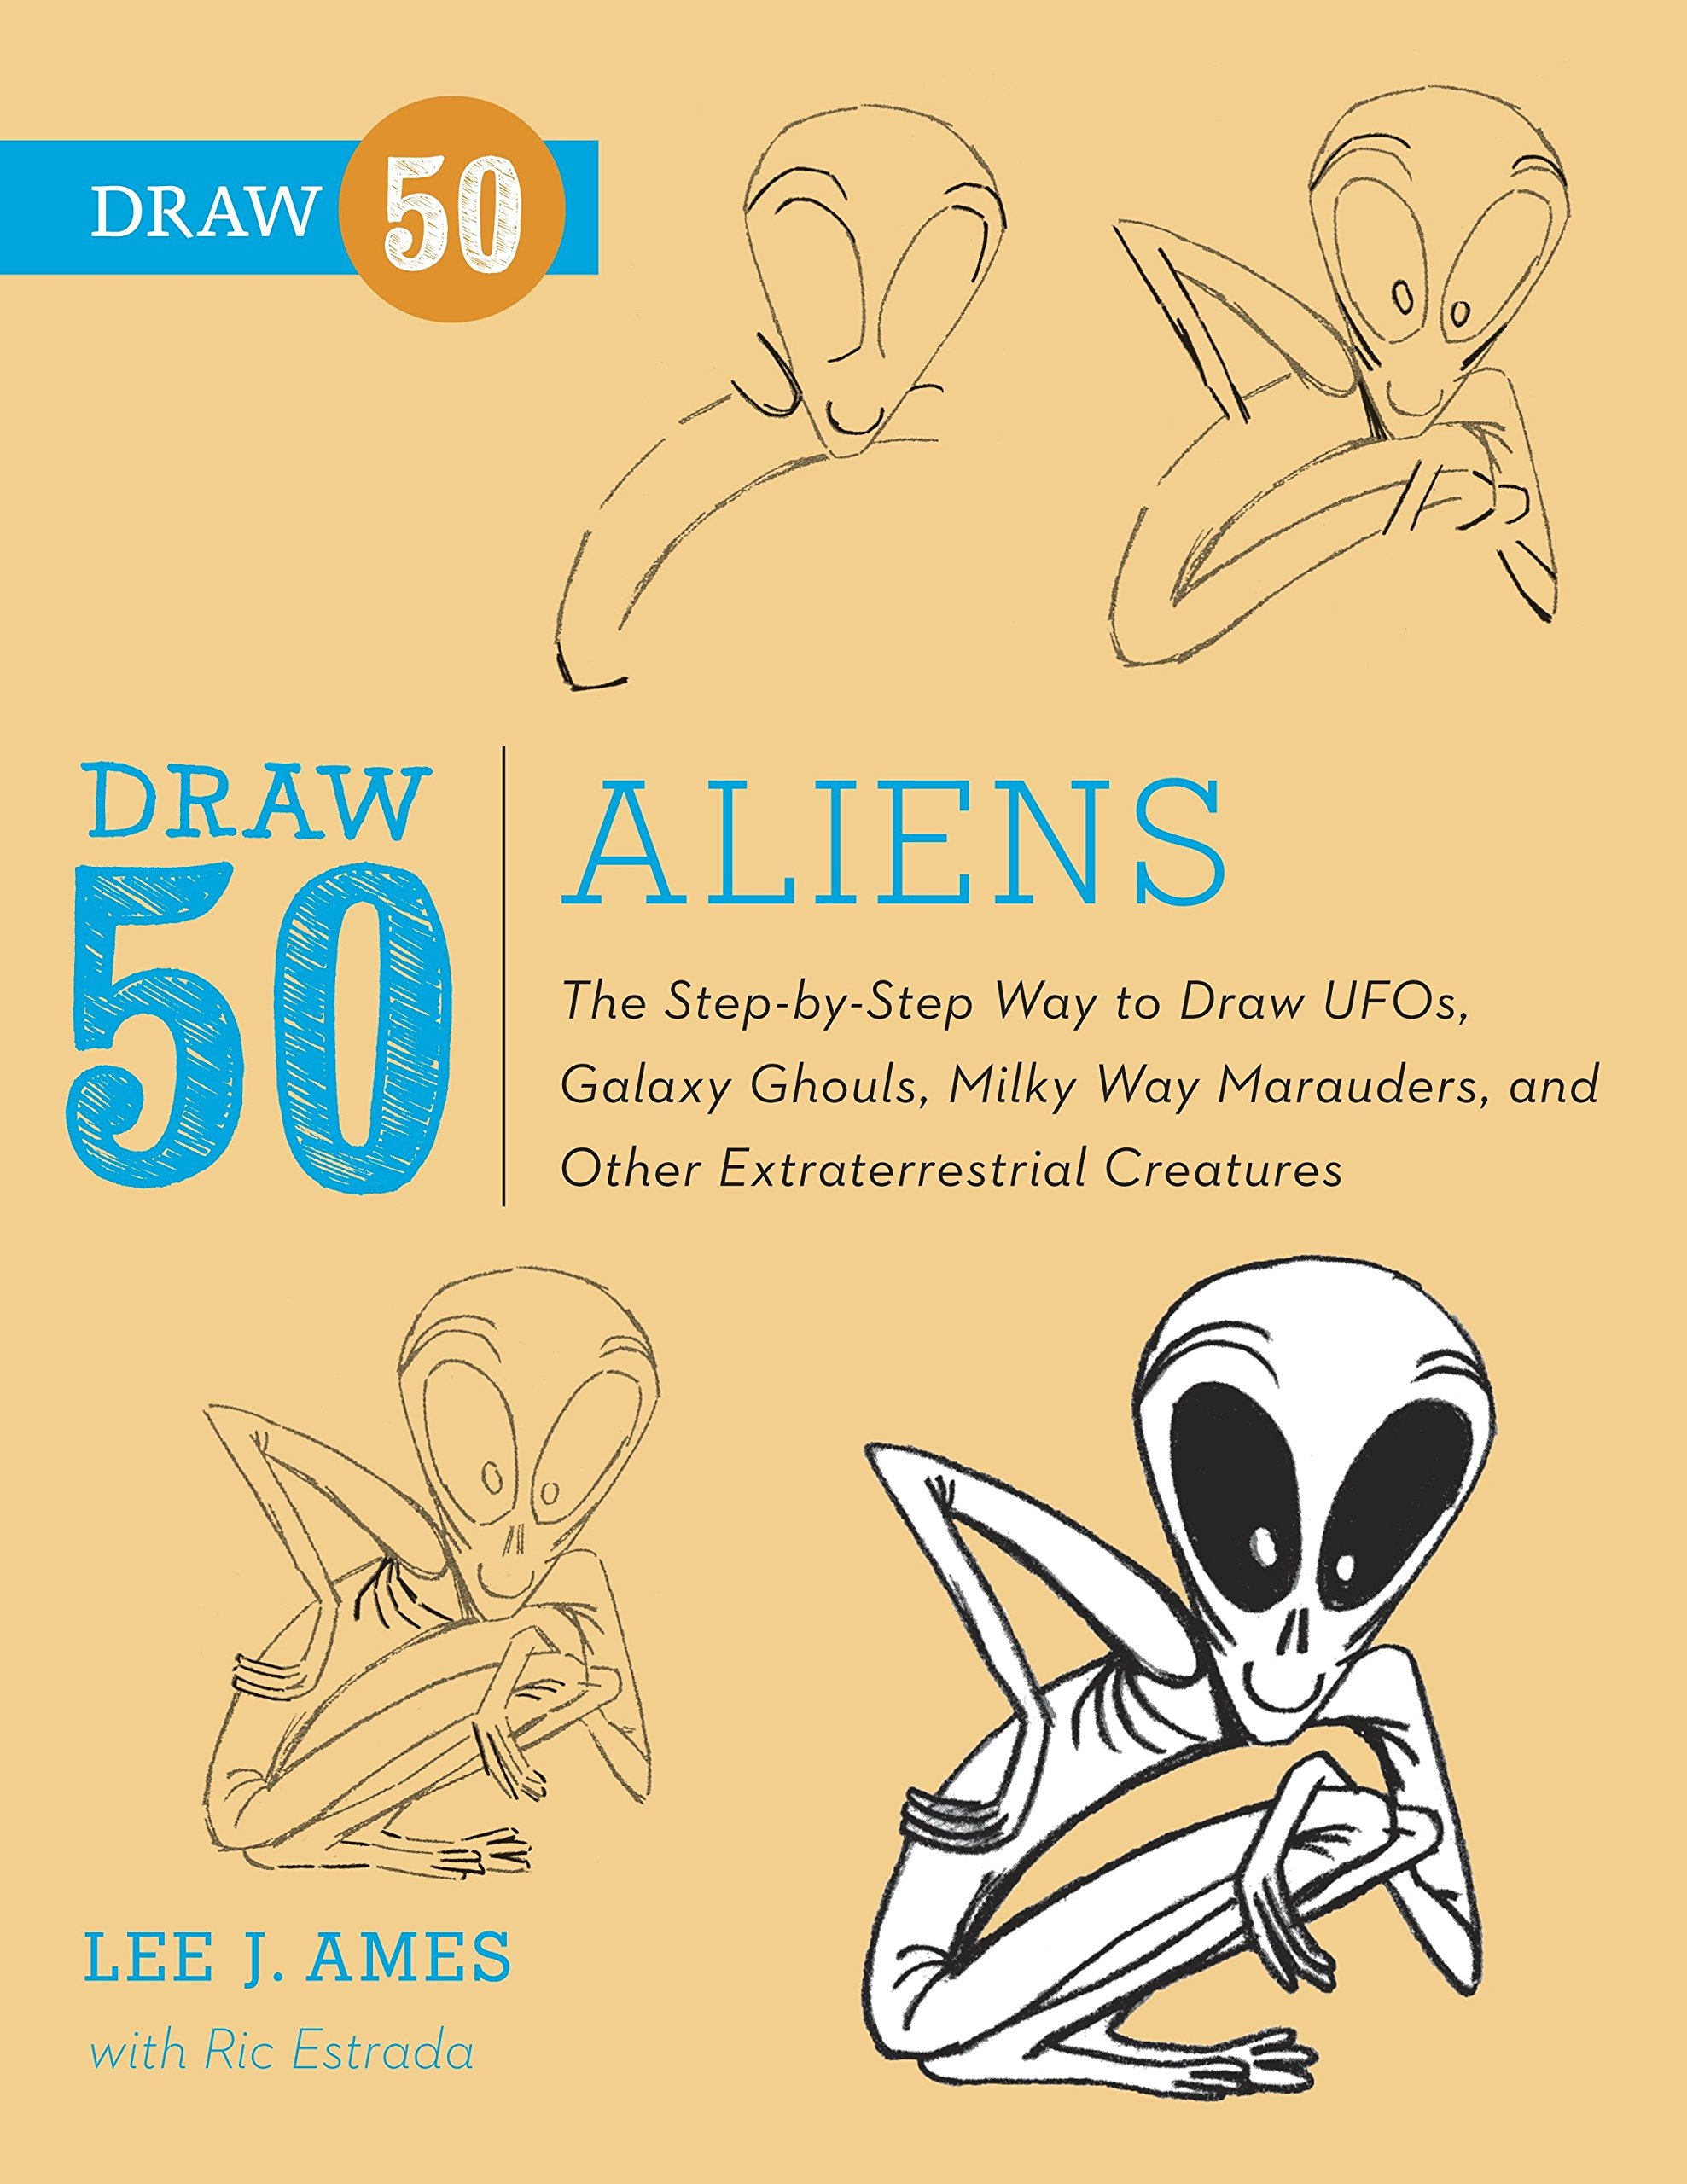 Draw 50 Aliens: The Step-by-Step Way to Draw UFOs, Galaxy Ghouls, Milky Way Marauders, and Other Extraterrestrial Creatures ebook